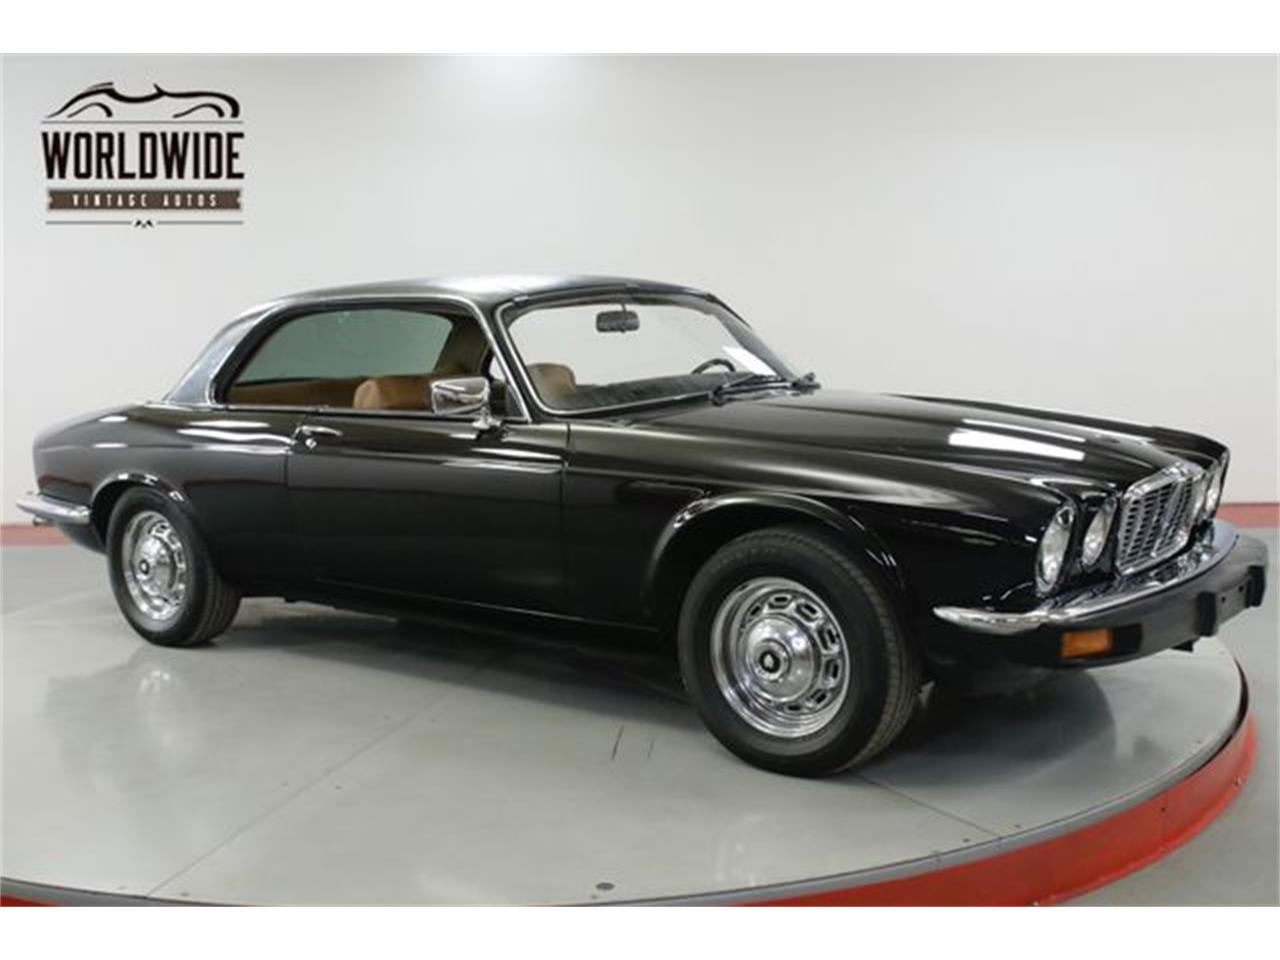 Large Picture of 1976 Jaguar XJ6 - $28,900.00 Offered by Worldwide Vintage Autos - PSG5